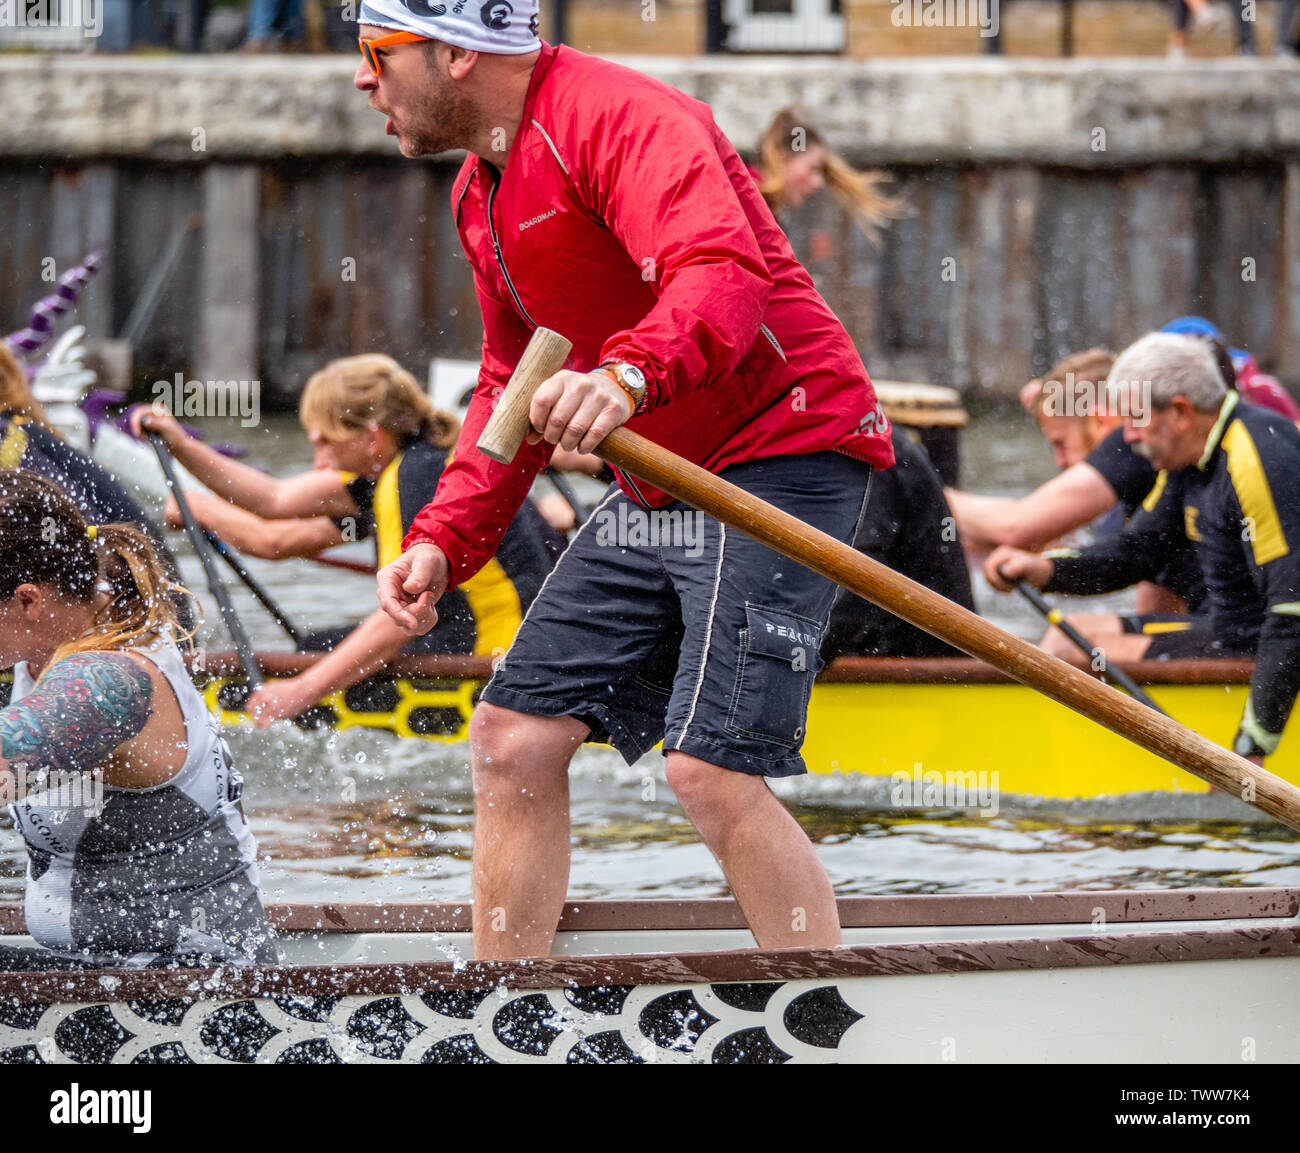 Boat Racing Stock Photos Boat Racing Stock Images Alamy